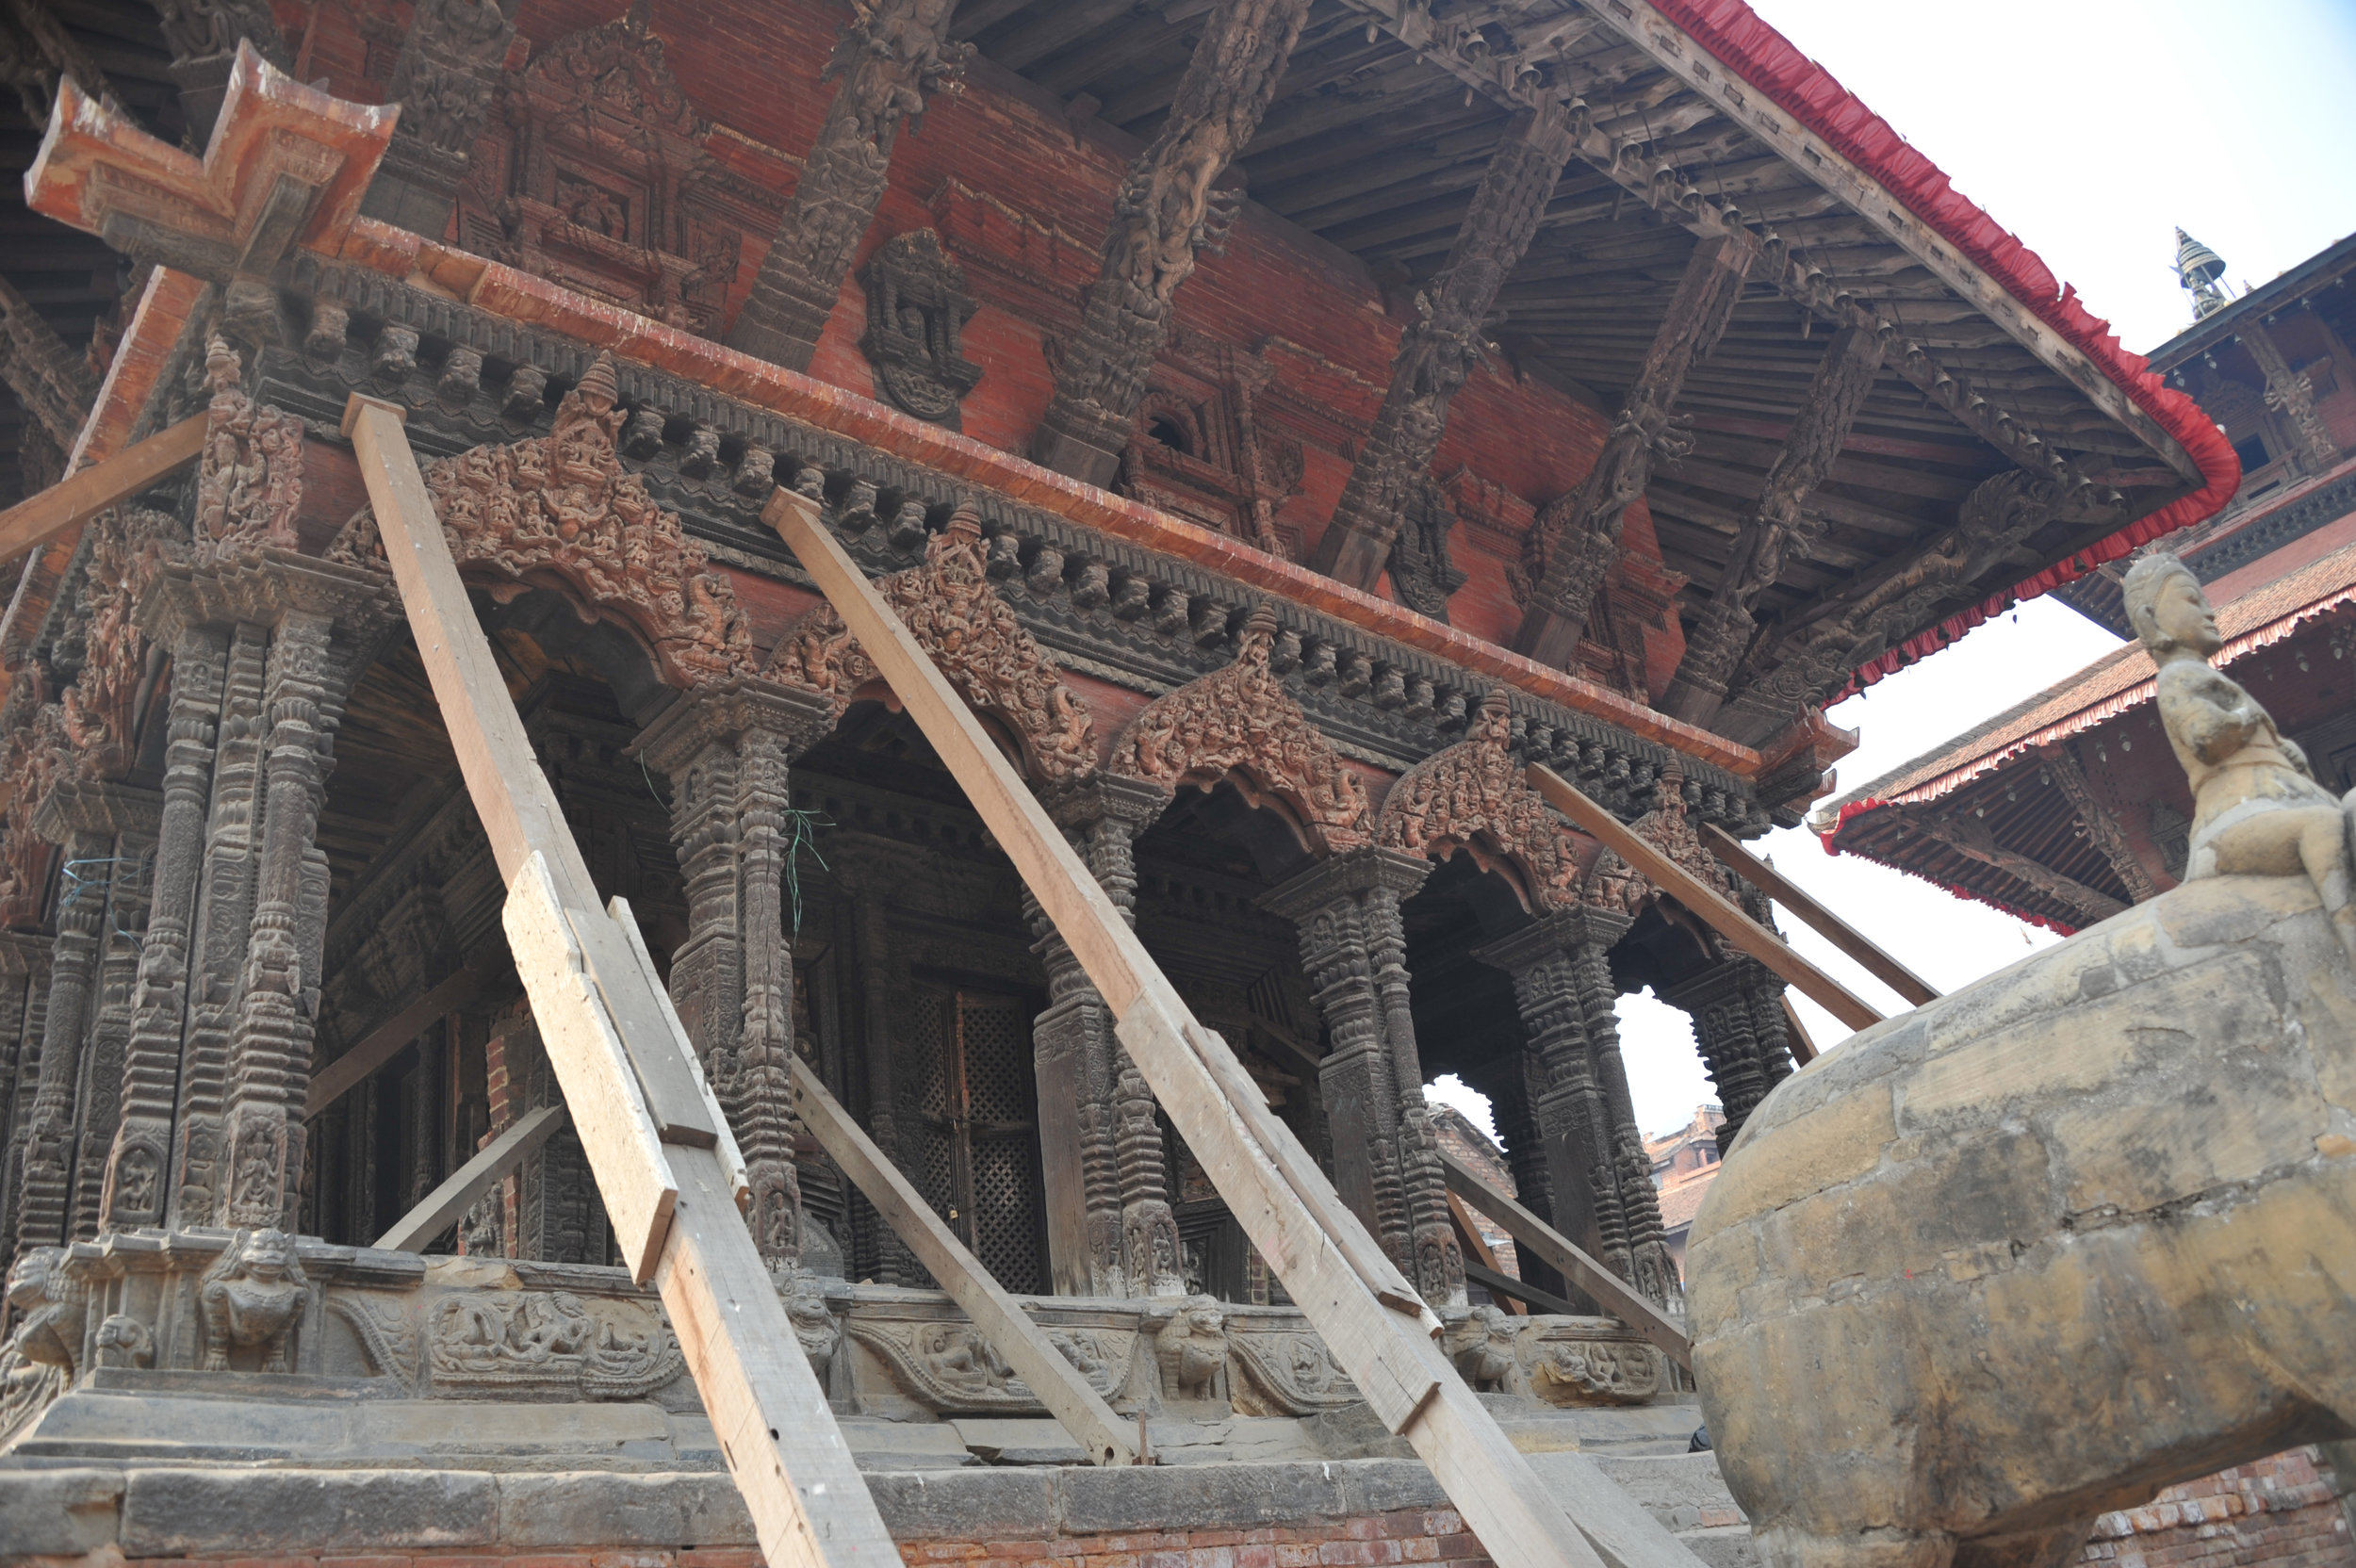 mck nepal 2016 post earthquake temple shored up DSC_6279.jpg